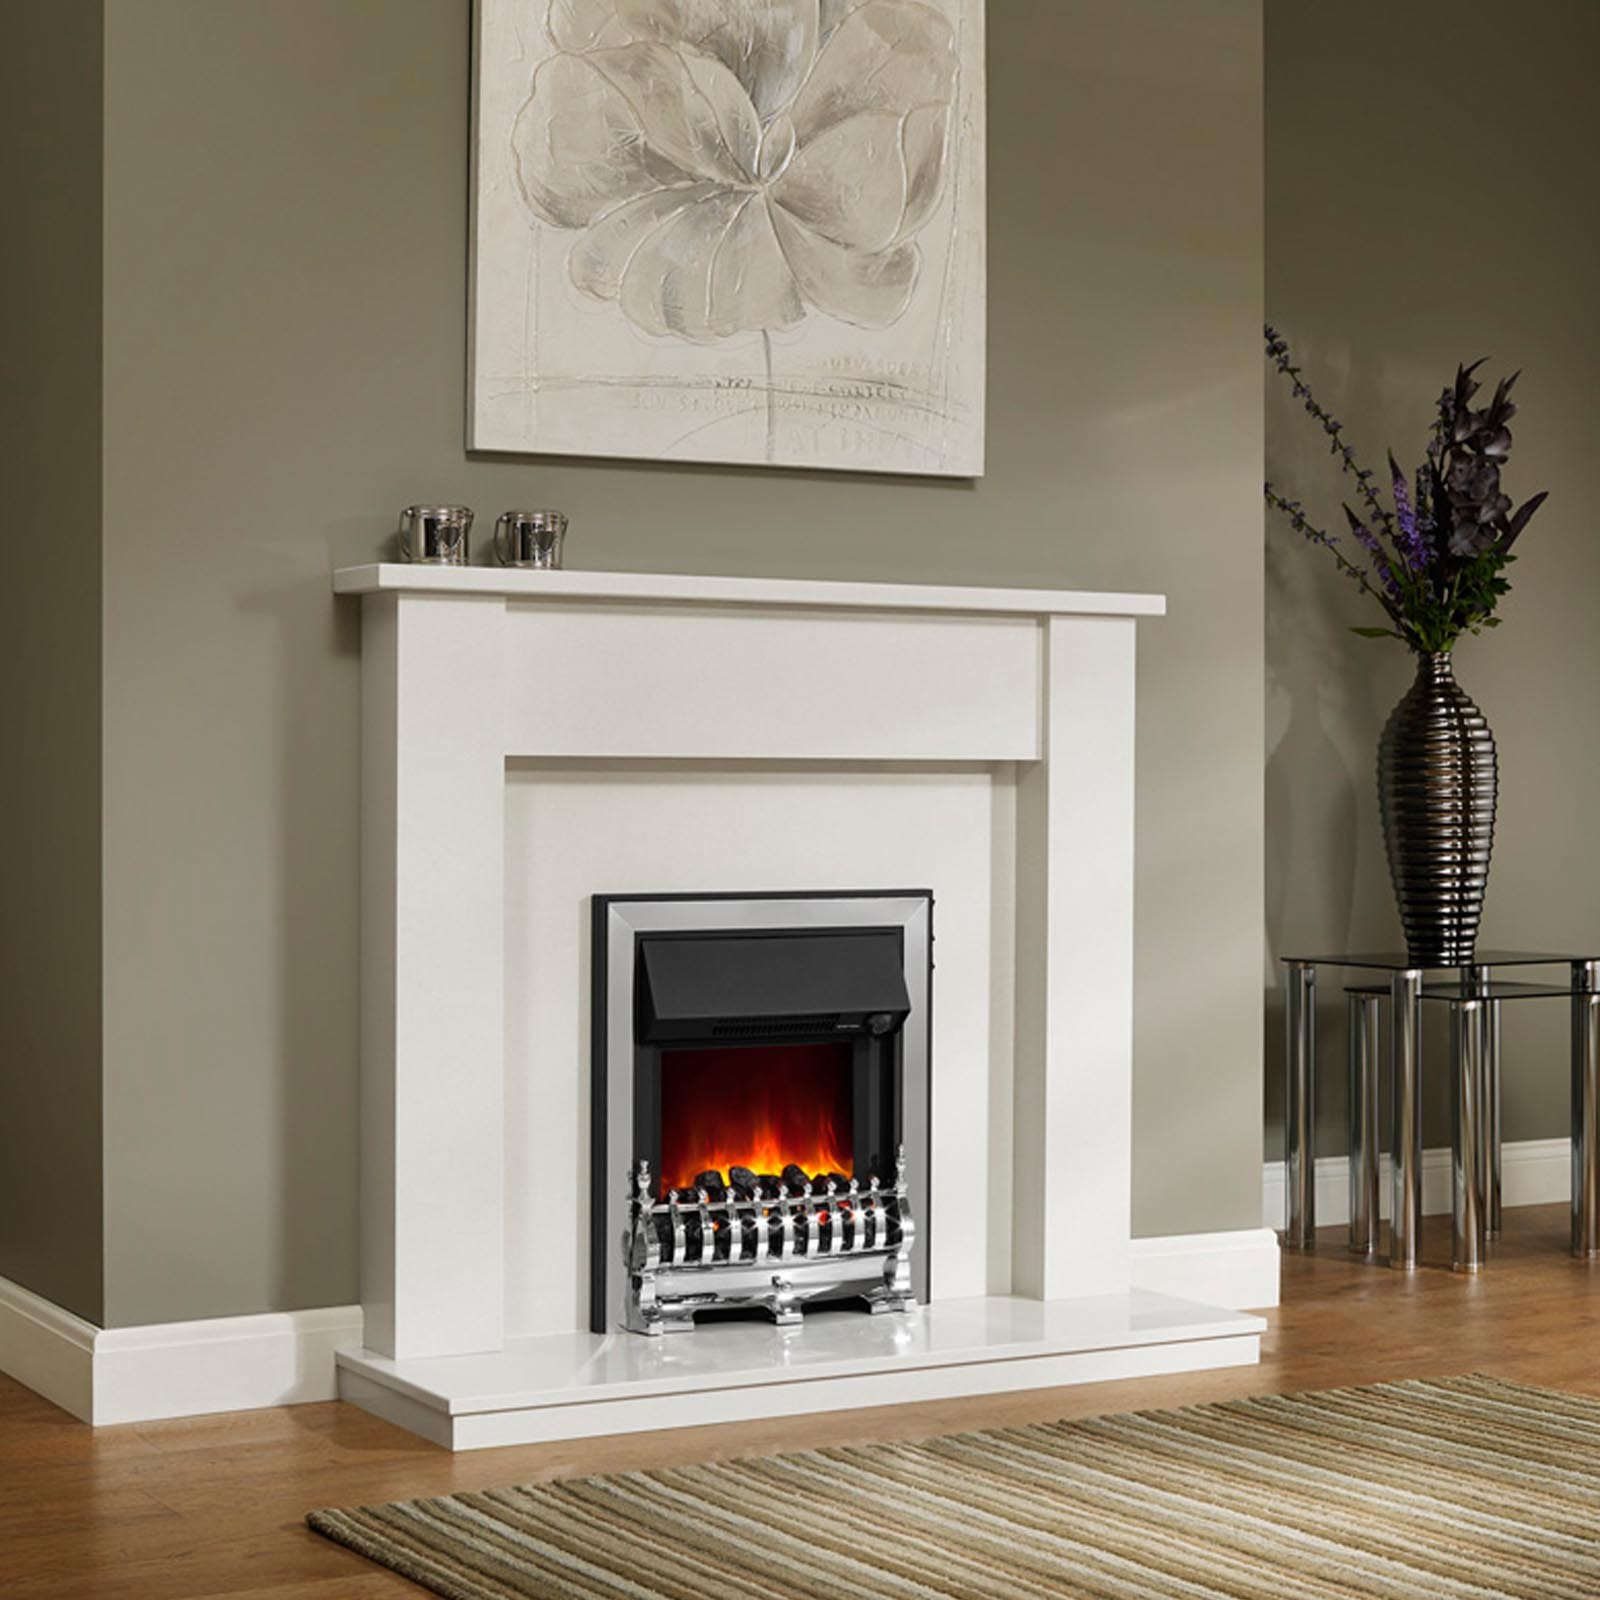 Unbeatable Low Priced Marble Fireplaces | FREE Express Delivery